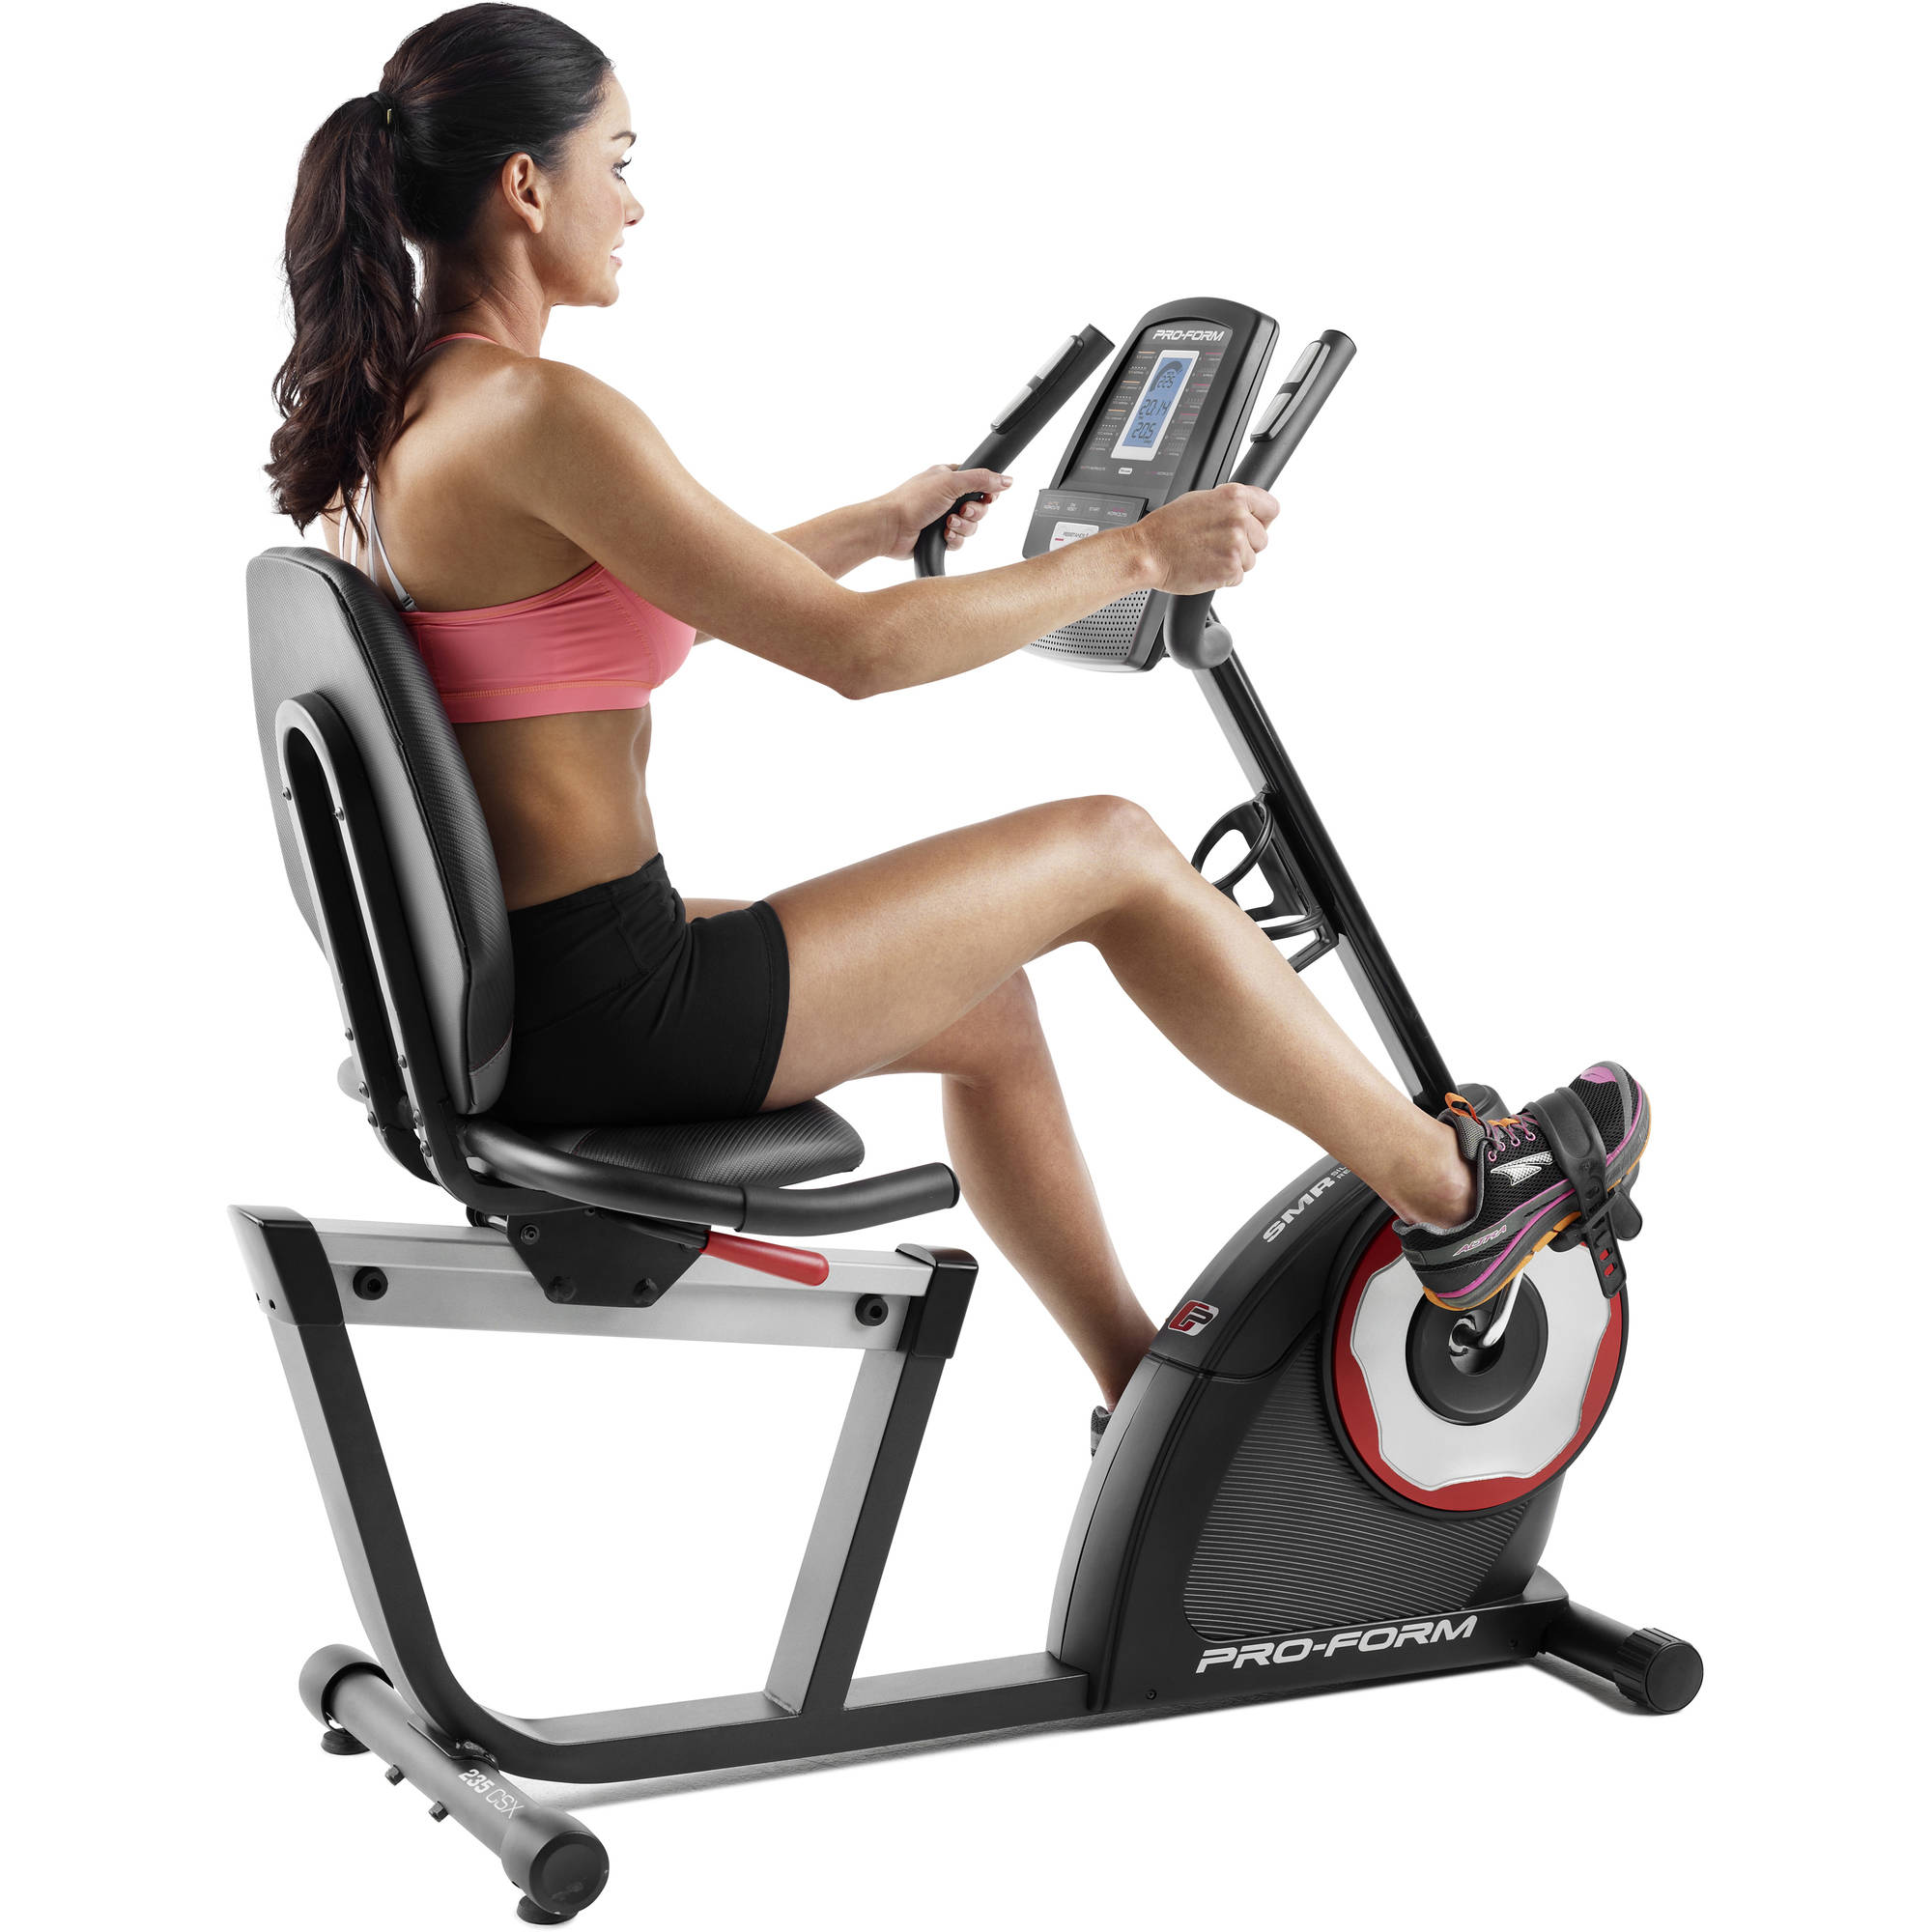 ProForm 235 CSX Recumbent Exercise Bike with 18 Workout Programs